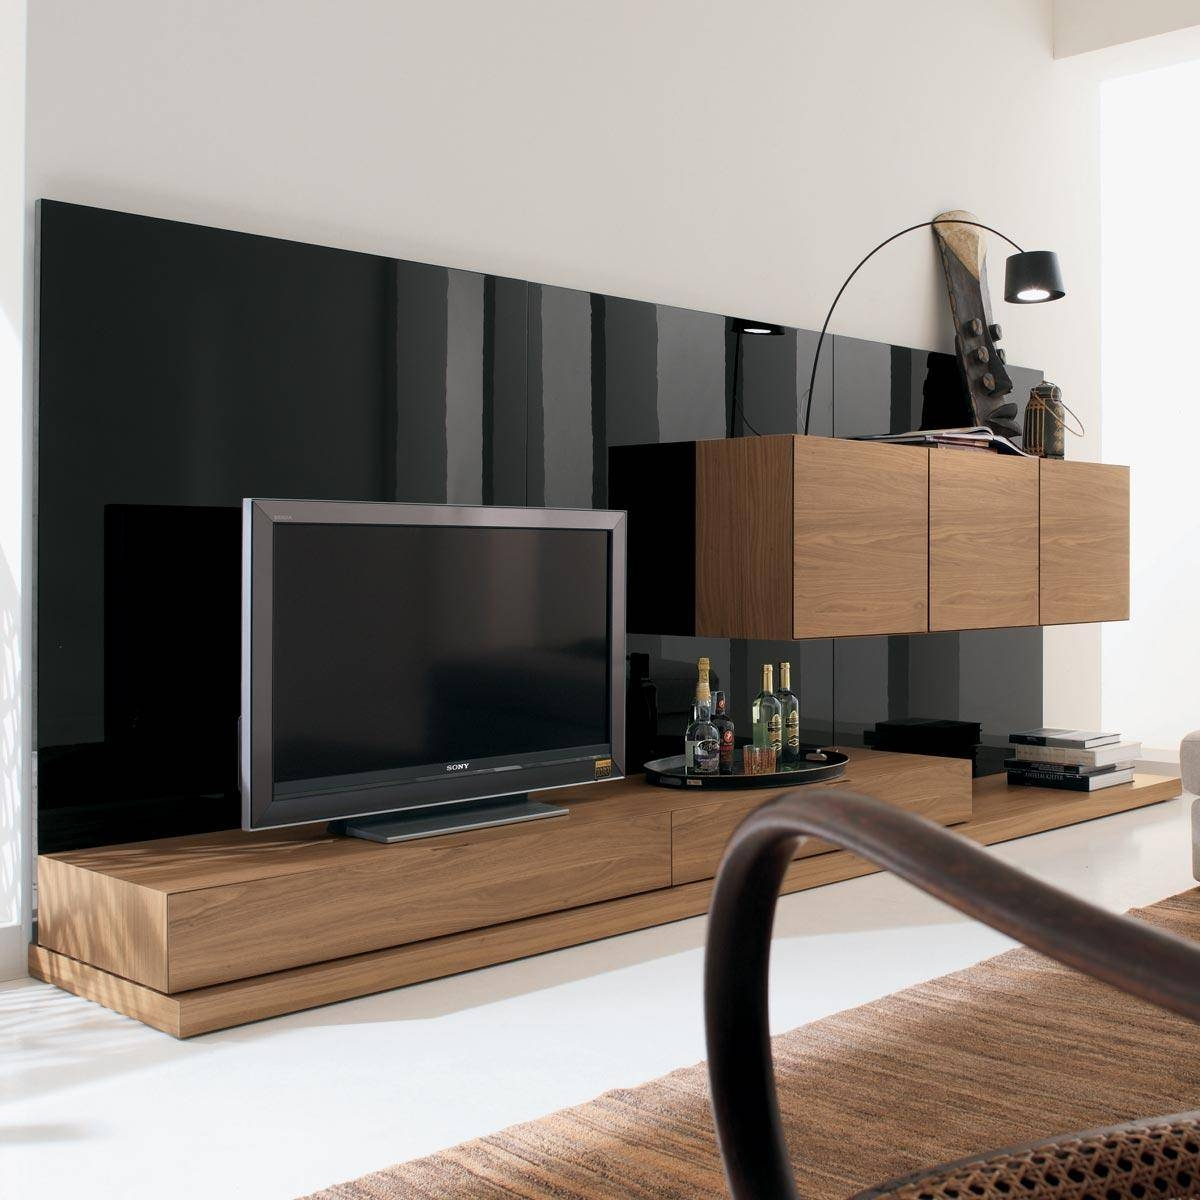 Solid Wood Tv Stand Also Long Tv Stand And Black Wall Living Room Pertaining To Contemporary Tv Cabinets (View 14 of 15)